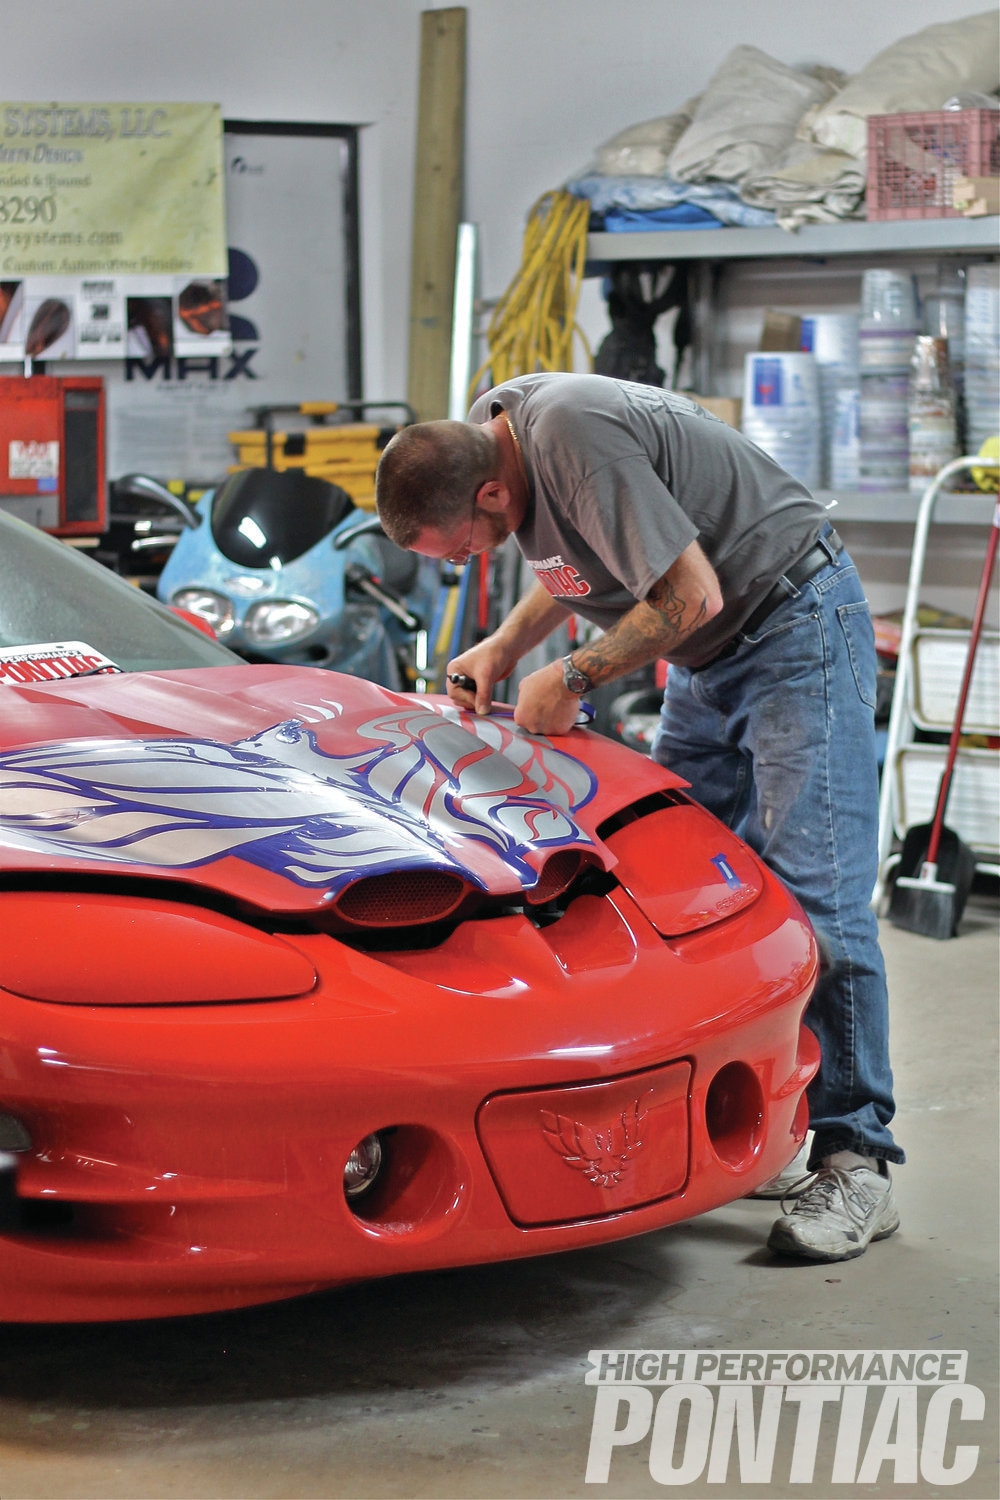 """5 There's only one wing and the chicken """"scream"""" to go and the masking will be done! Some masking jobs are easier than others. Since this hood bird is highly detailed, this step took Mark one full day. """"Most other Pontiac decal kits, like Judge stripes, would take much less time to mask,"""" Mark says. """"In contrast, masking off a Special Edition Second-Gen Bandit, including all the pinstriping, would take considerably longer."""""""